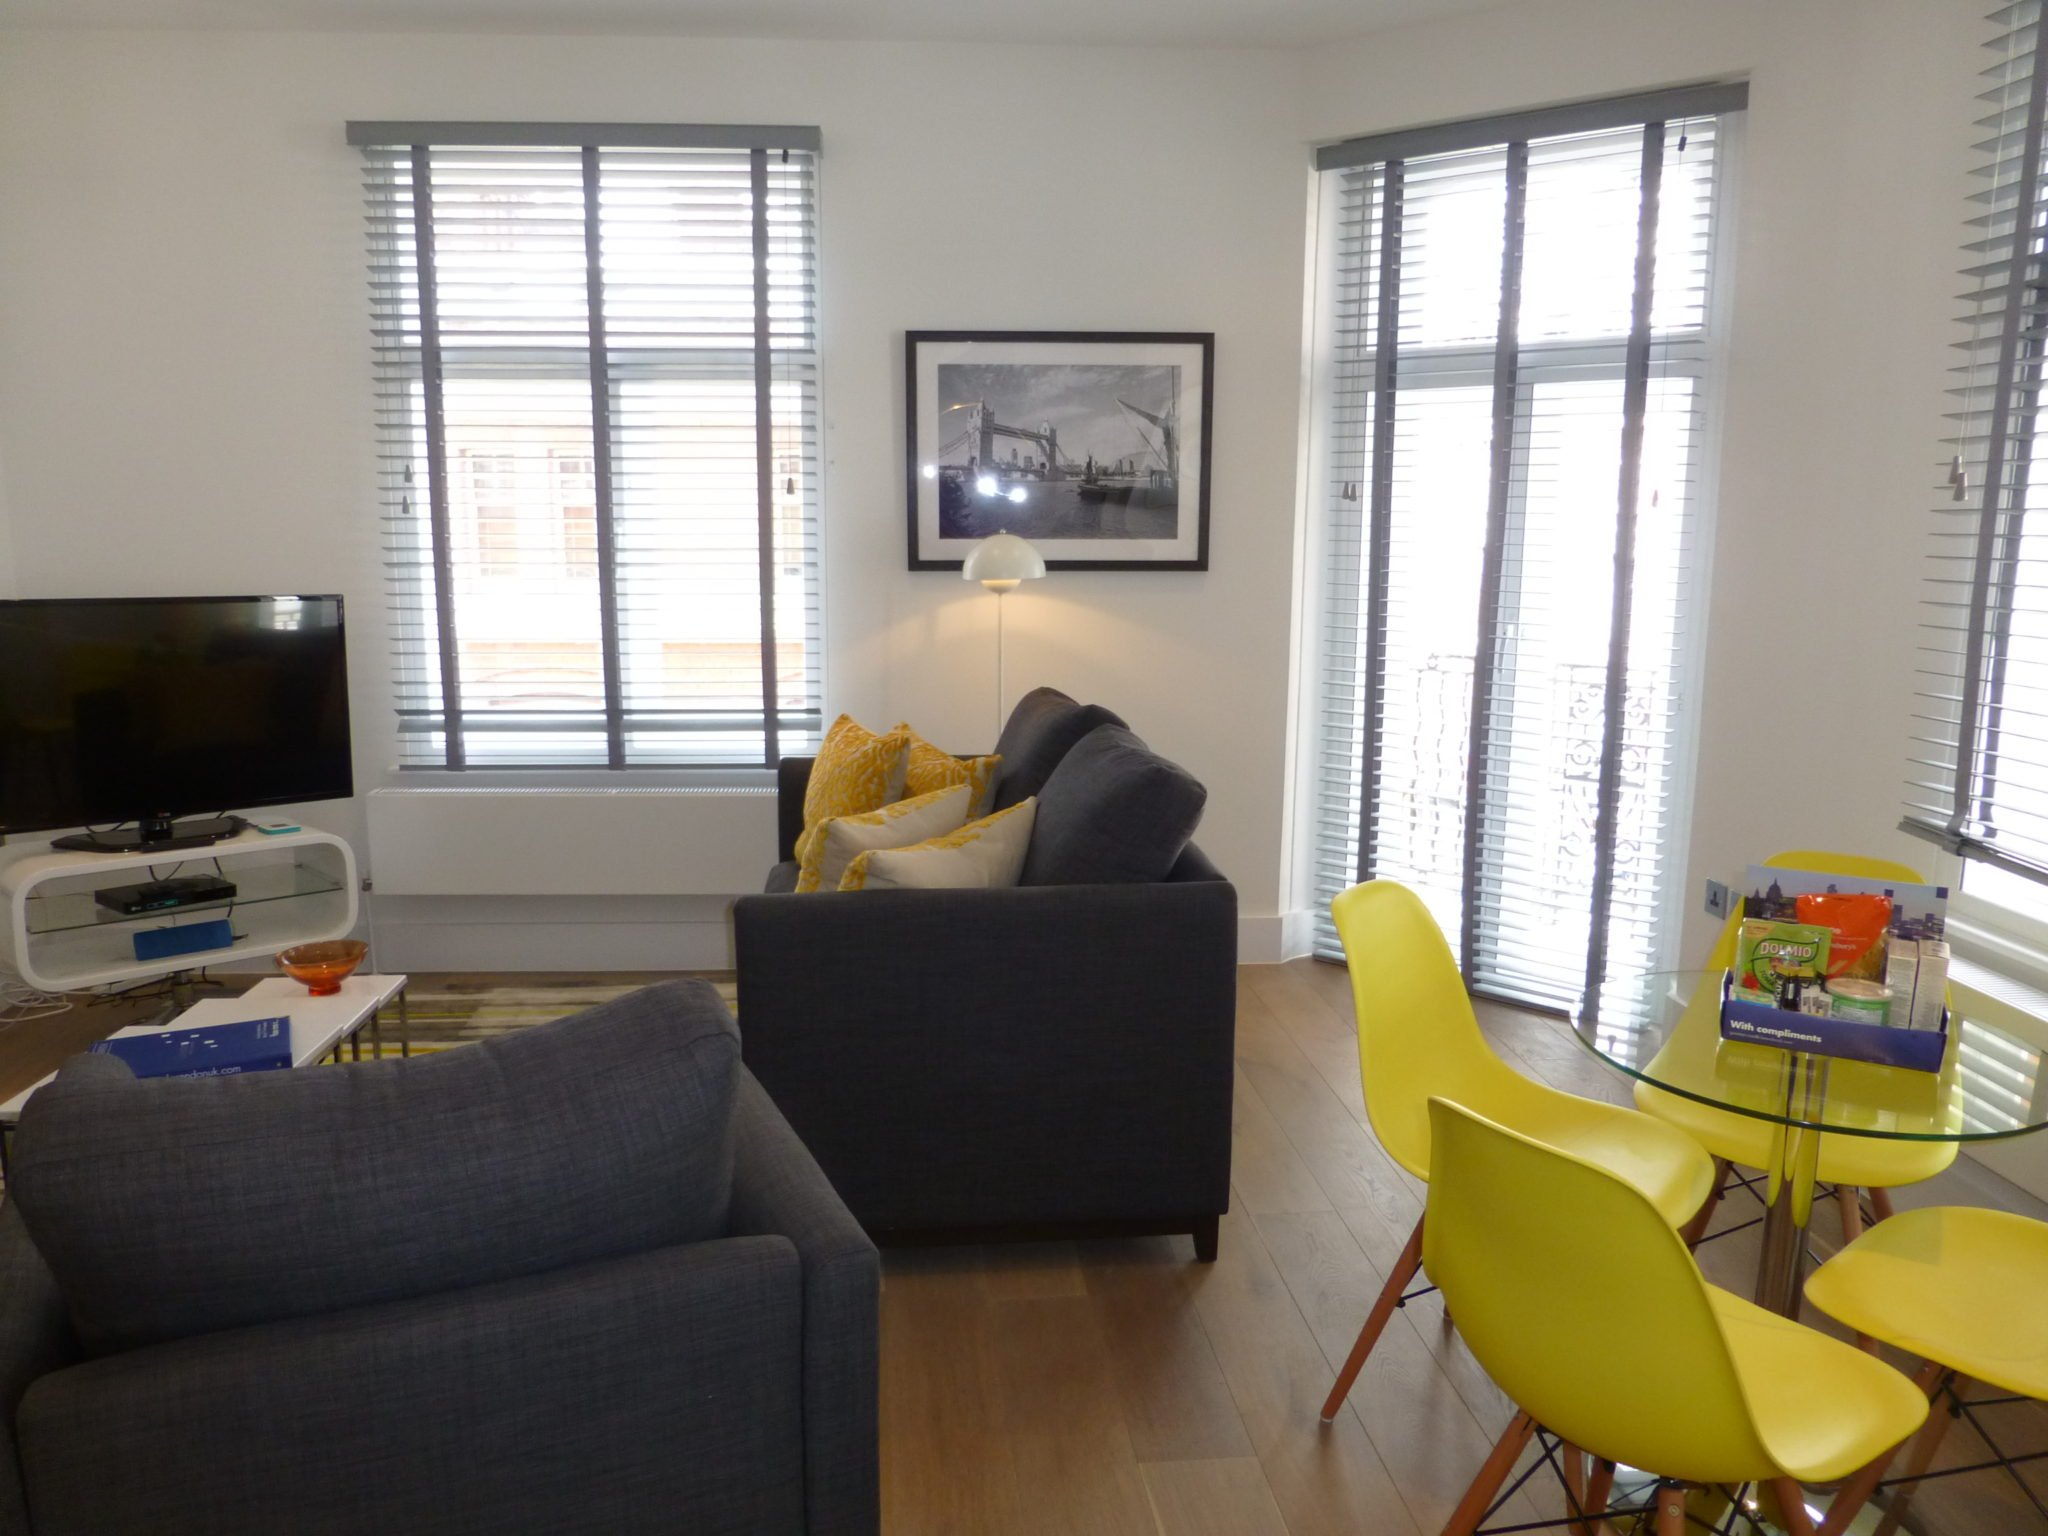 Shaftesbury-Avenue-Serviced-Apartments-London-|Short-Let-Accommodation-Soho,-West-End,-Piccadilly-Circus,-Oxford-Street-|-AVAILABLE-NOW--BOOK-NOW---Urban-Stay